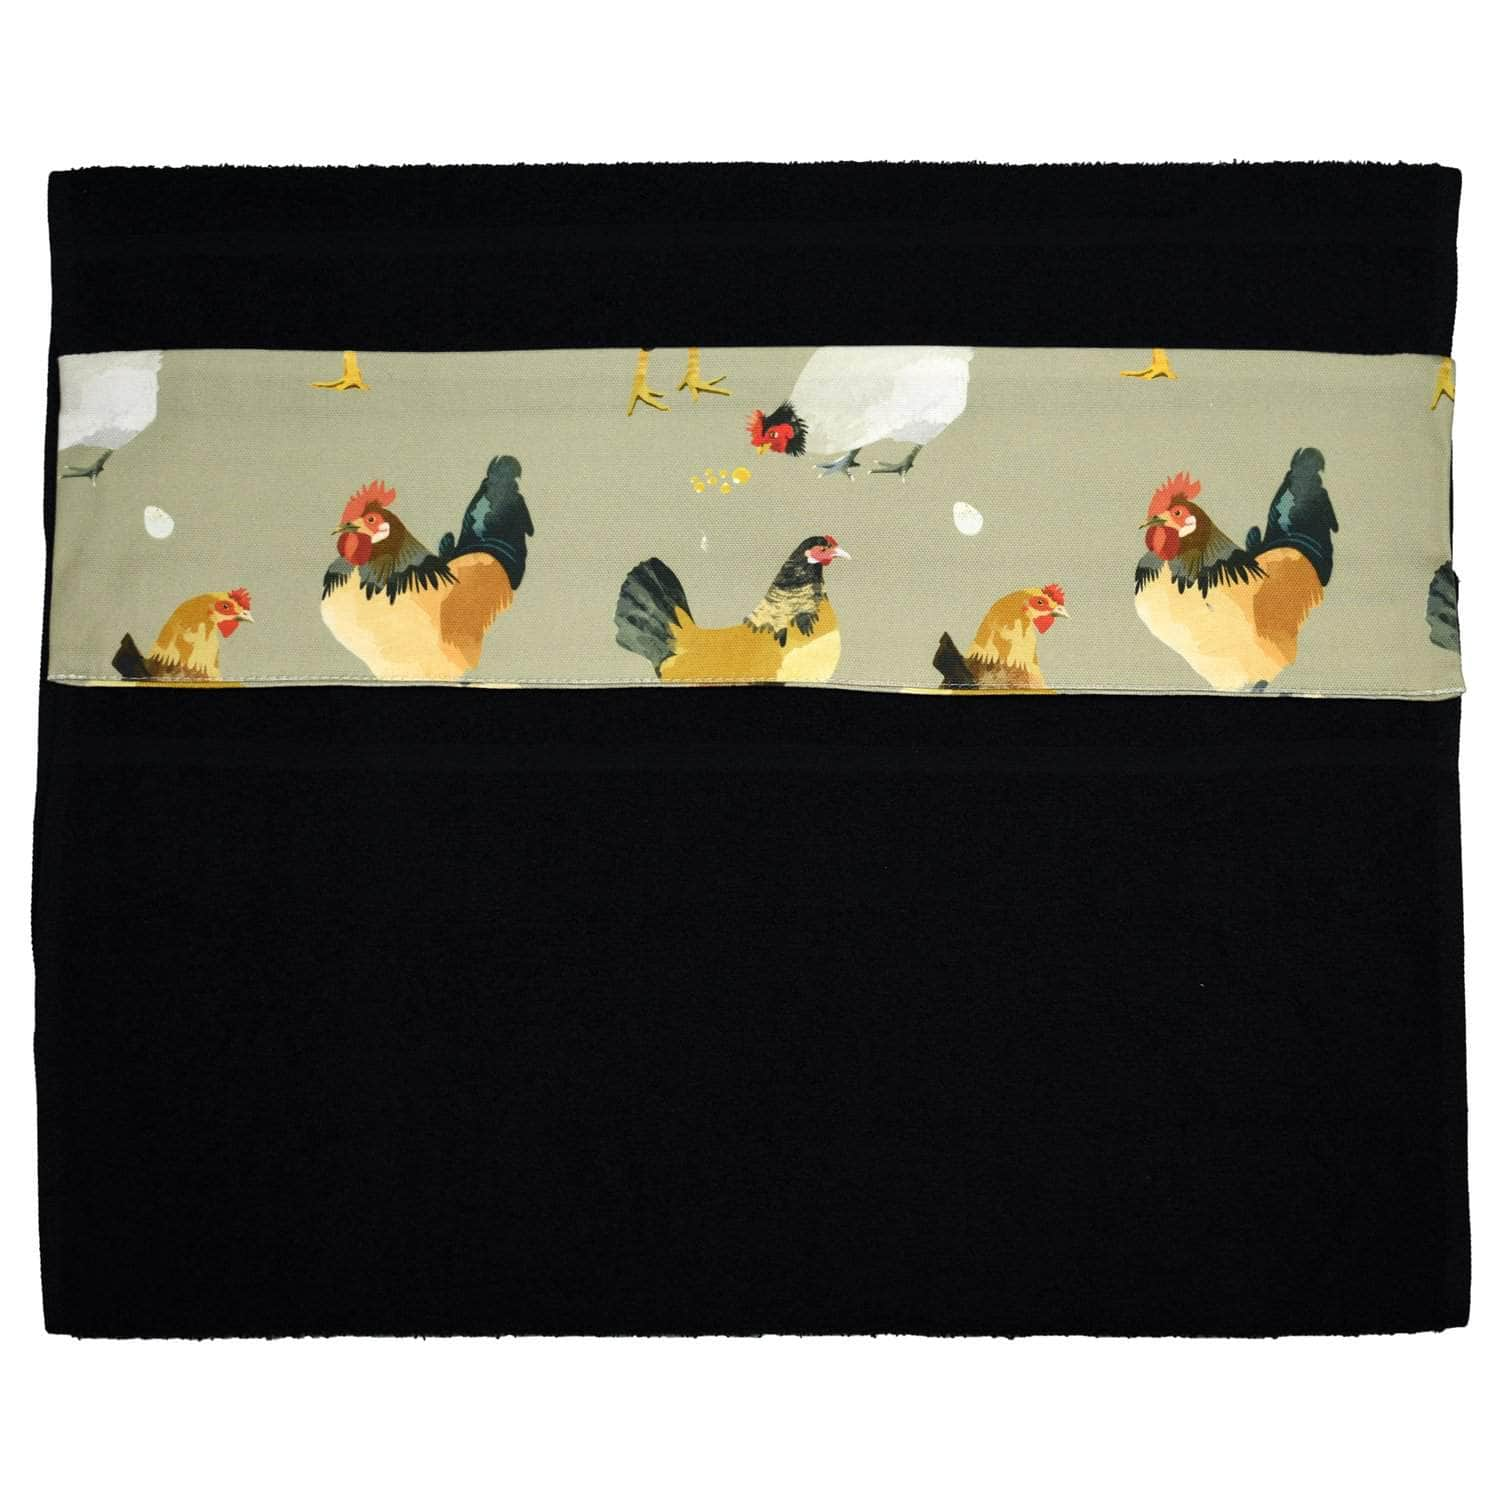 Wide (51 cm) hanging towel with velcro attachment - 'The Chickens'